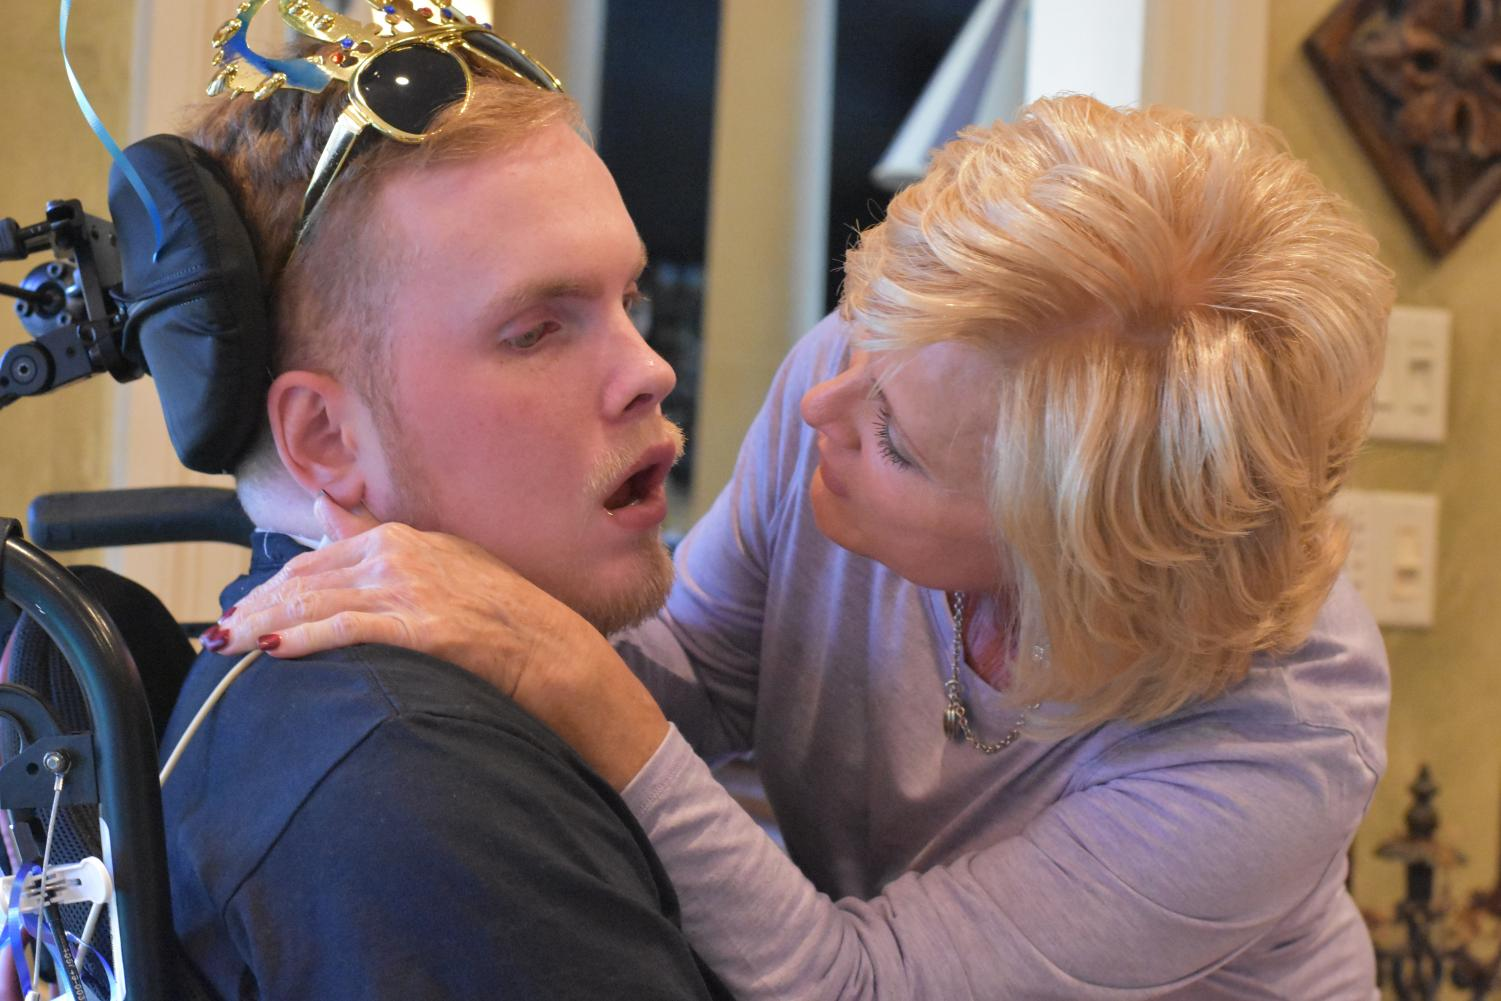 Terri Stanton leans in close to get her son Joseph's attention during his 25th birthday party. Stanton suffered a traumatic brain injury in a skateboard accident the summer after his sophomore year of high school. He was a state swimming champion at Kingwood Park and still holds three school swim records, despite only competing his freshman and sophomore seasons.